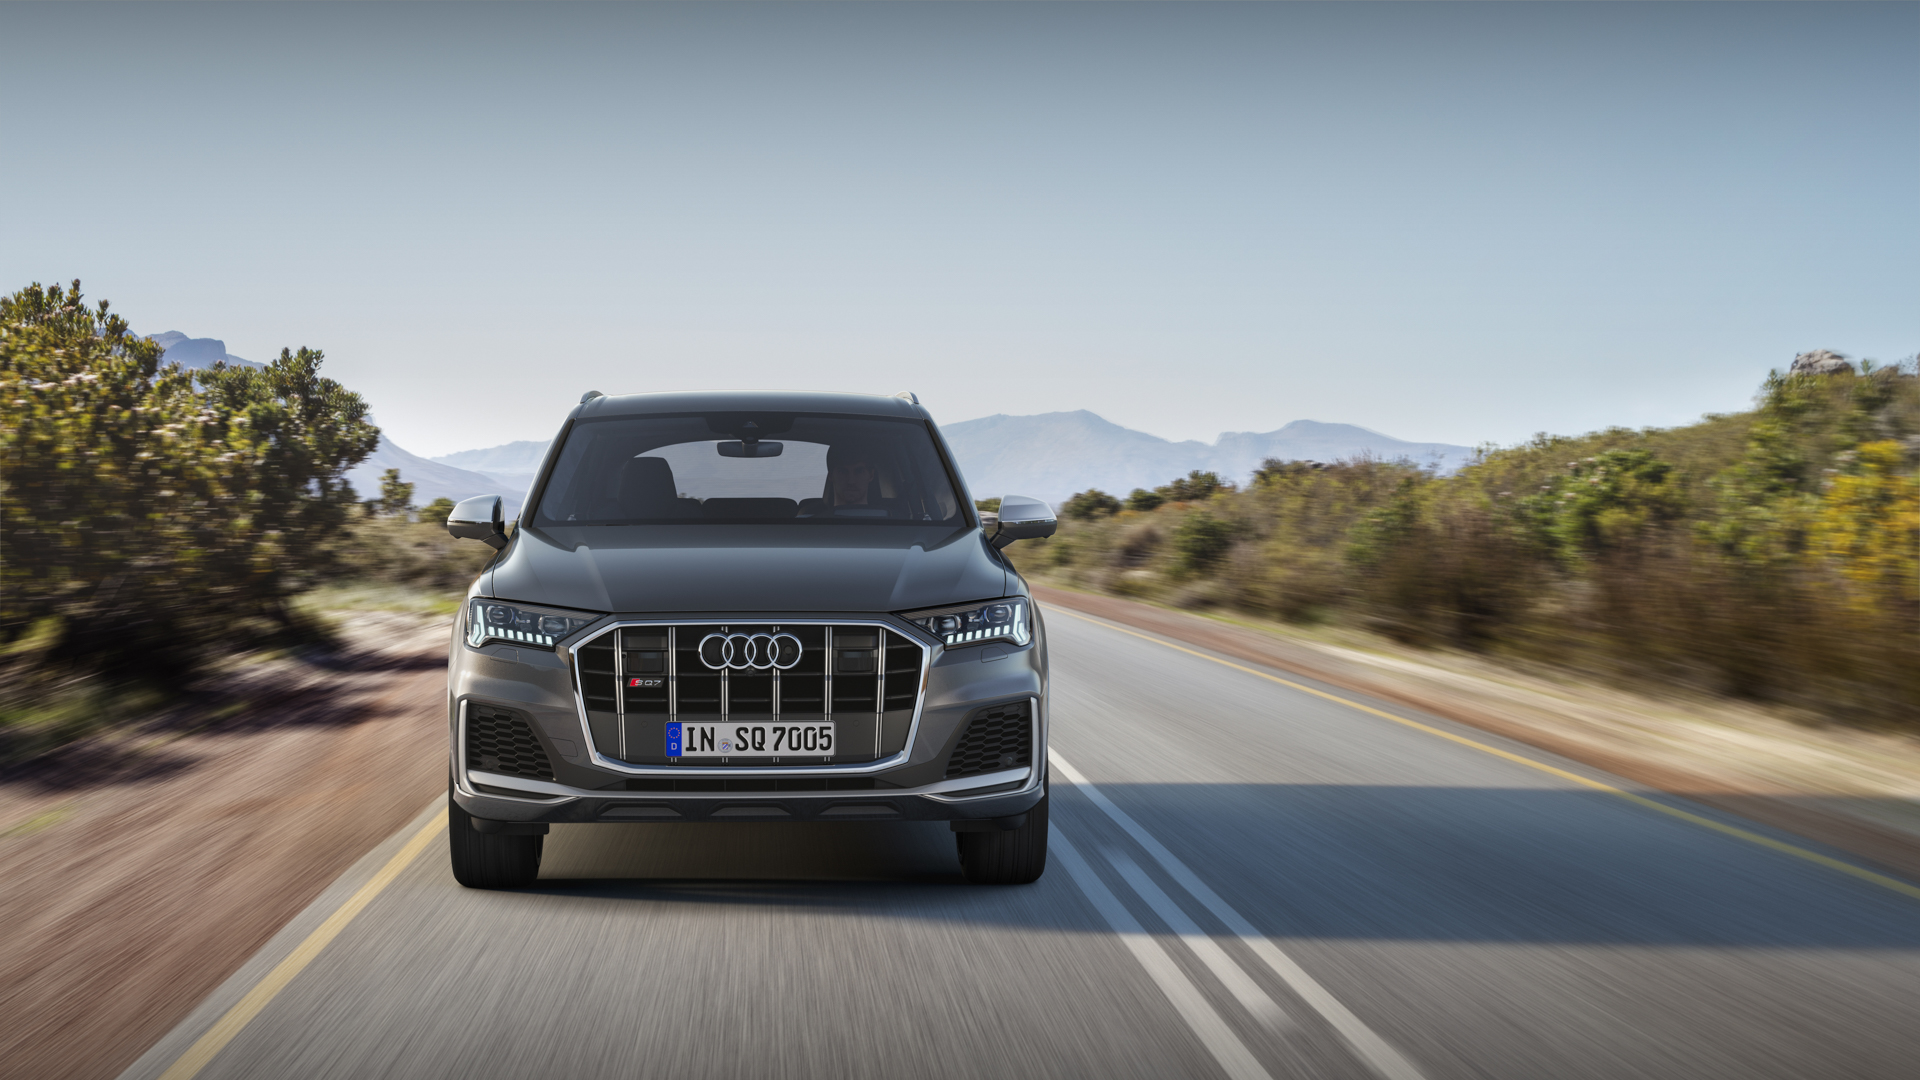 VIDEO: Check out the new Audi SQ7 TDI on Lovecars